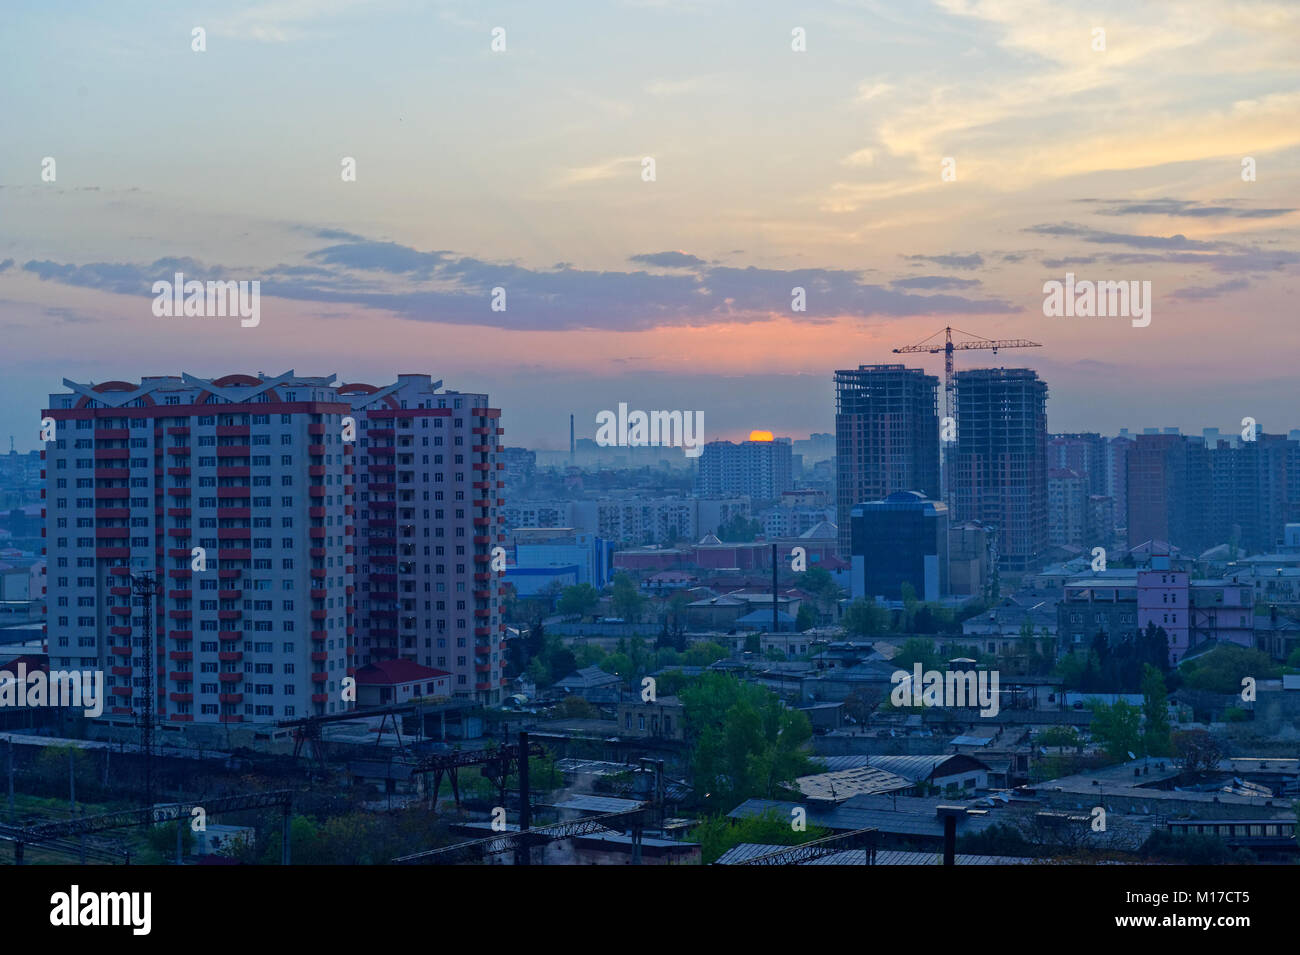 Sunrise in Baku, Azerbaijan showing buildings under construction  (2010) - Stock Image